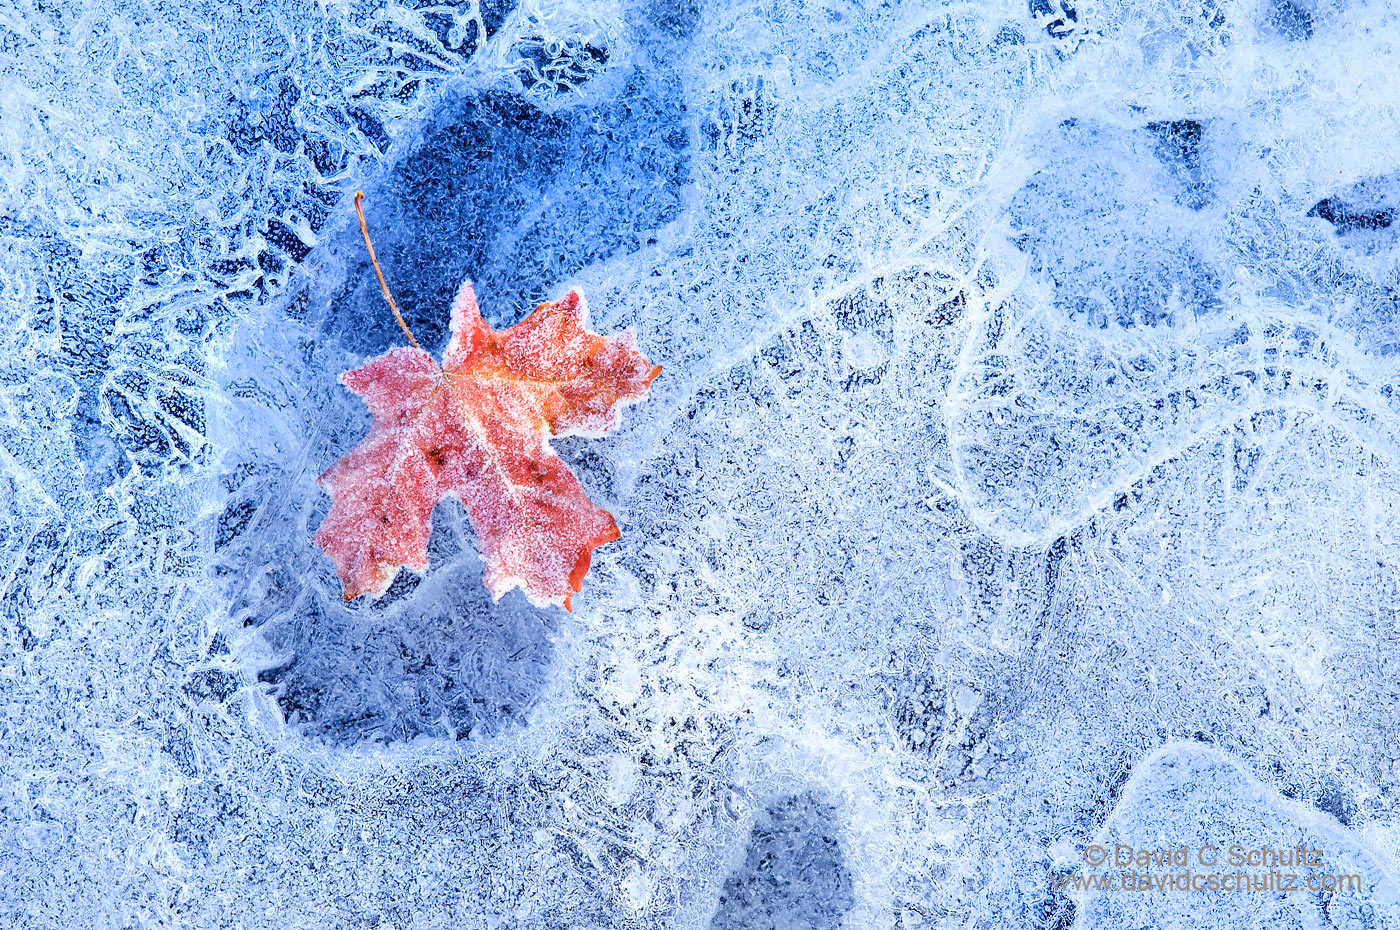 Maple leaf on frozen stream - Image #3-6794